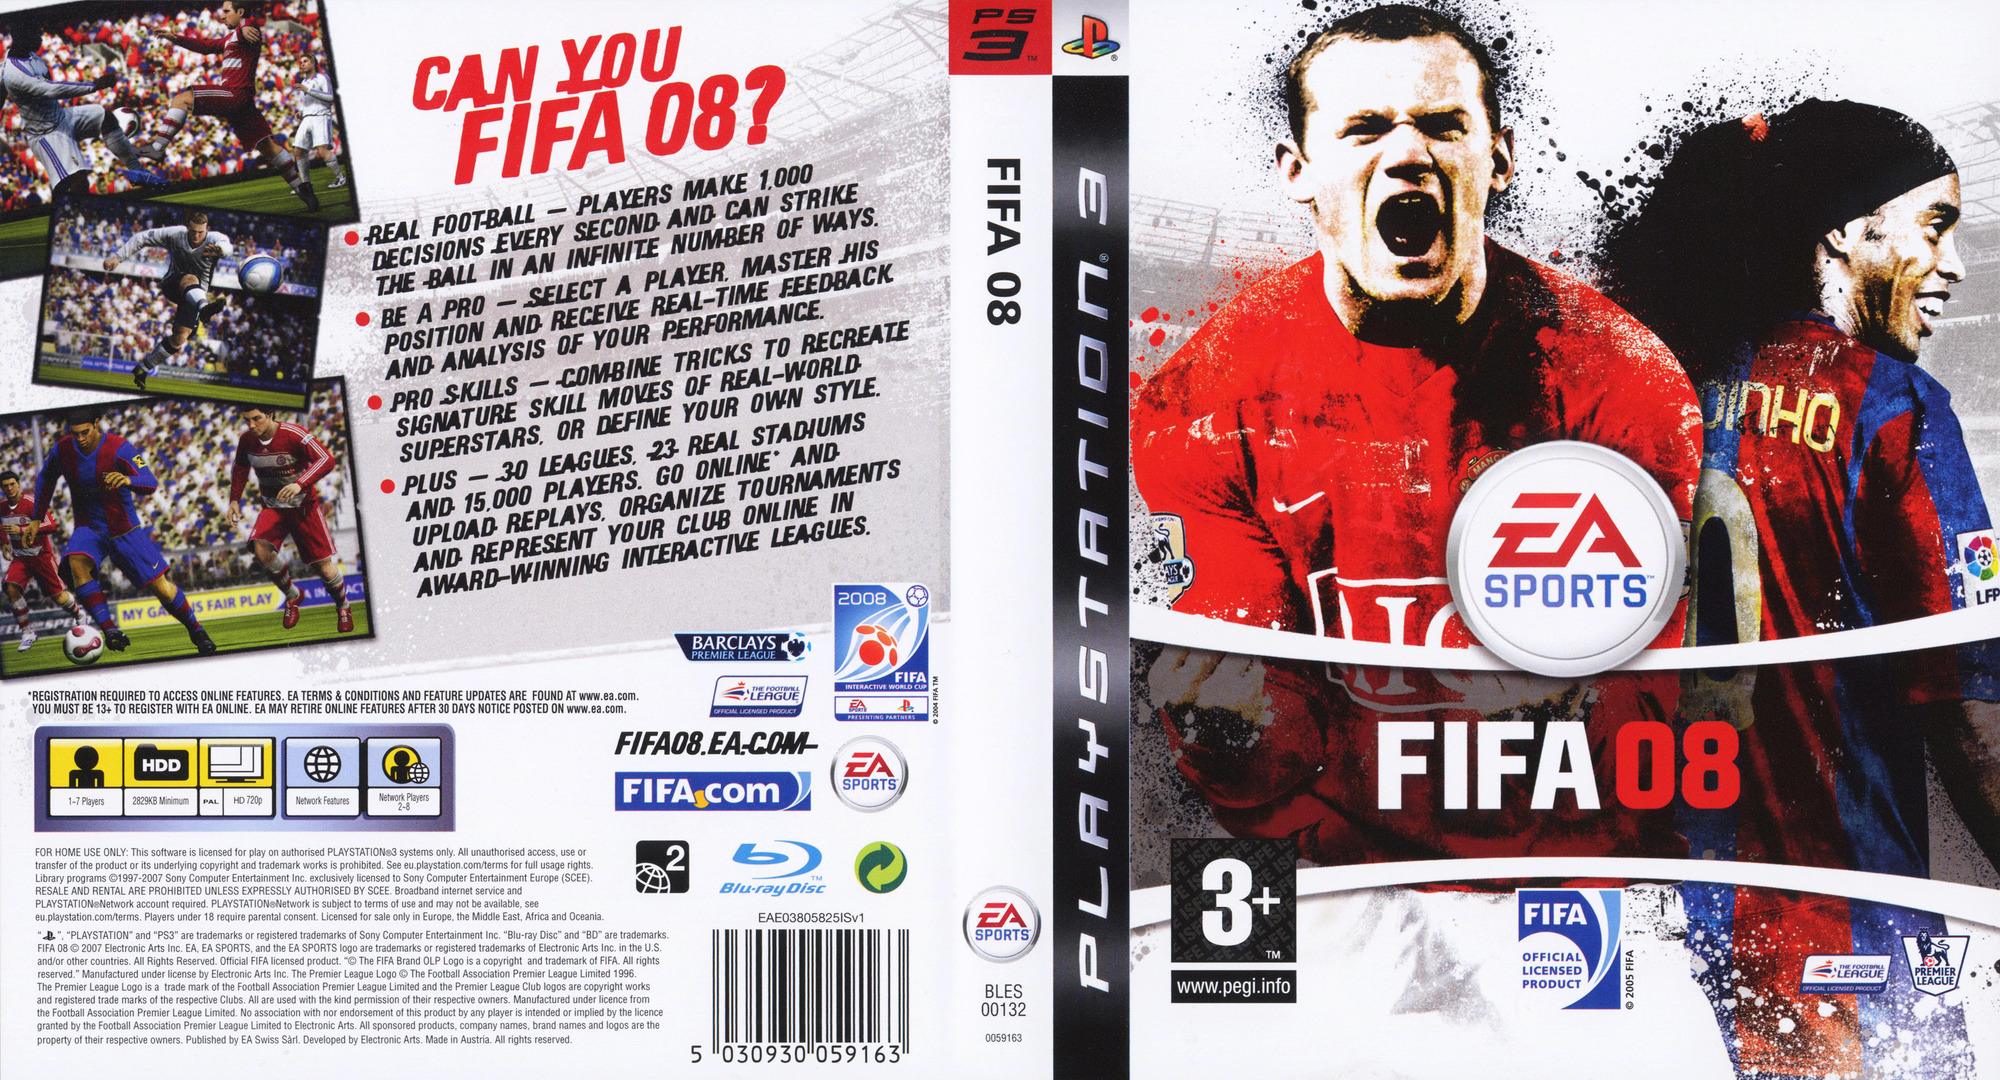 Release Date >> BLES00132 - FIFA 08